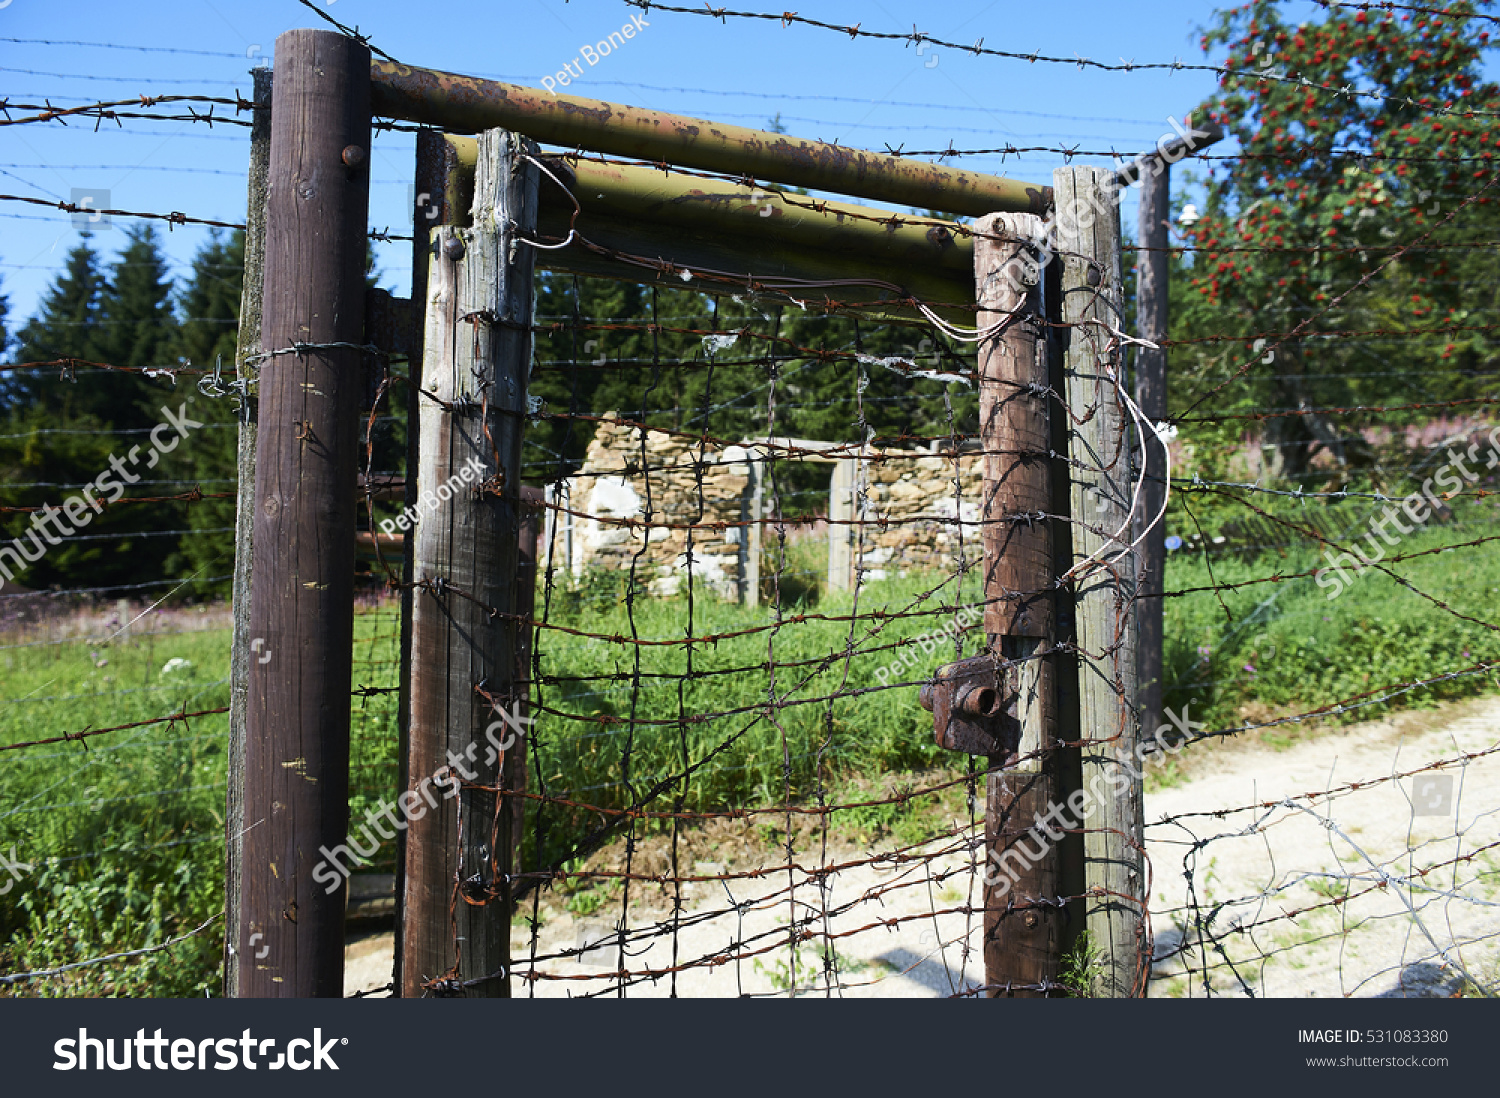 Barbed Wire Remains Iron Curtain On Stock Photo (100% Legal ...